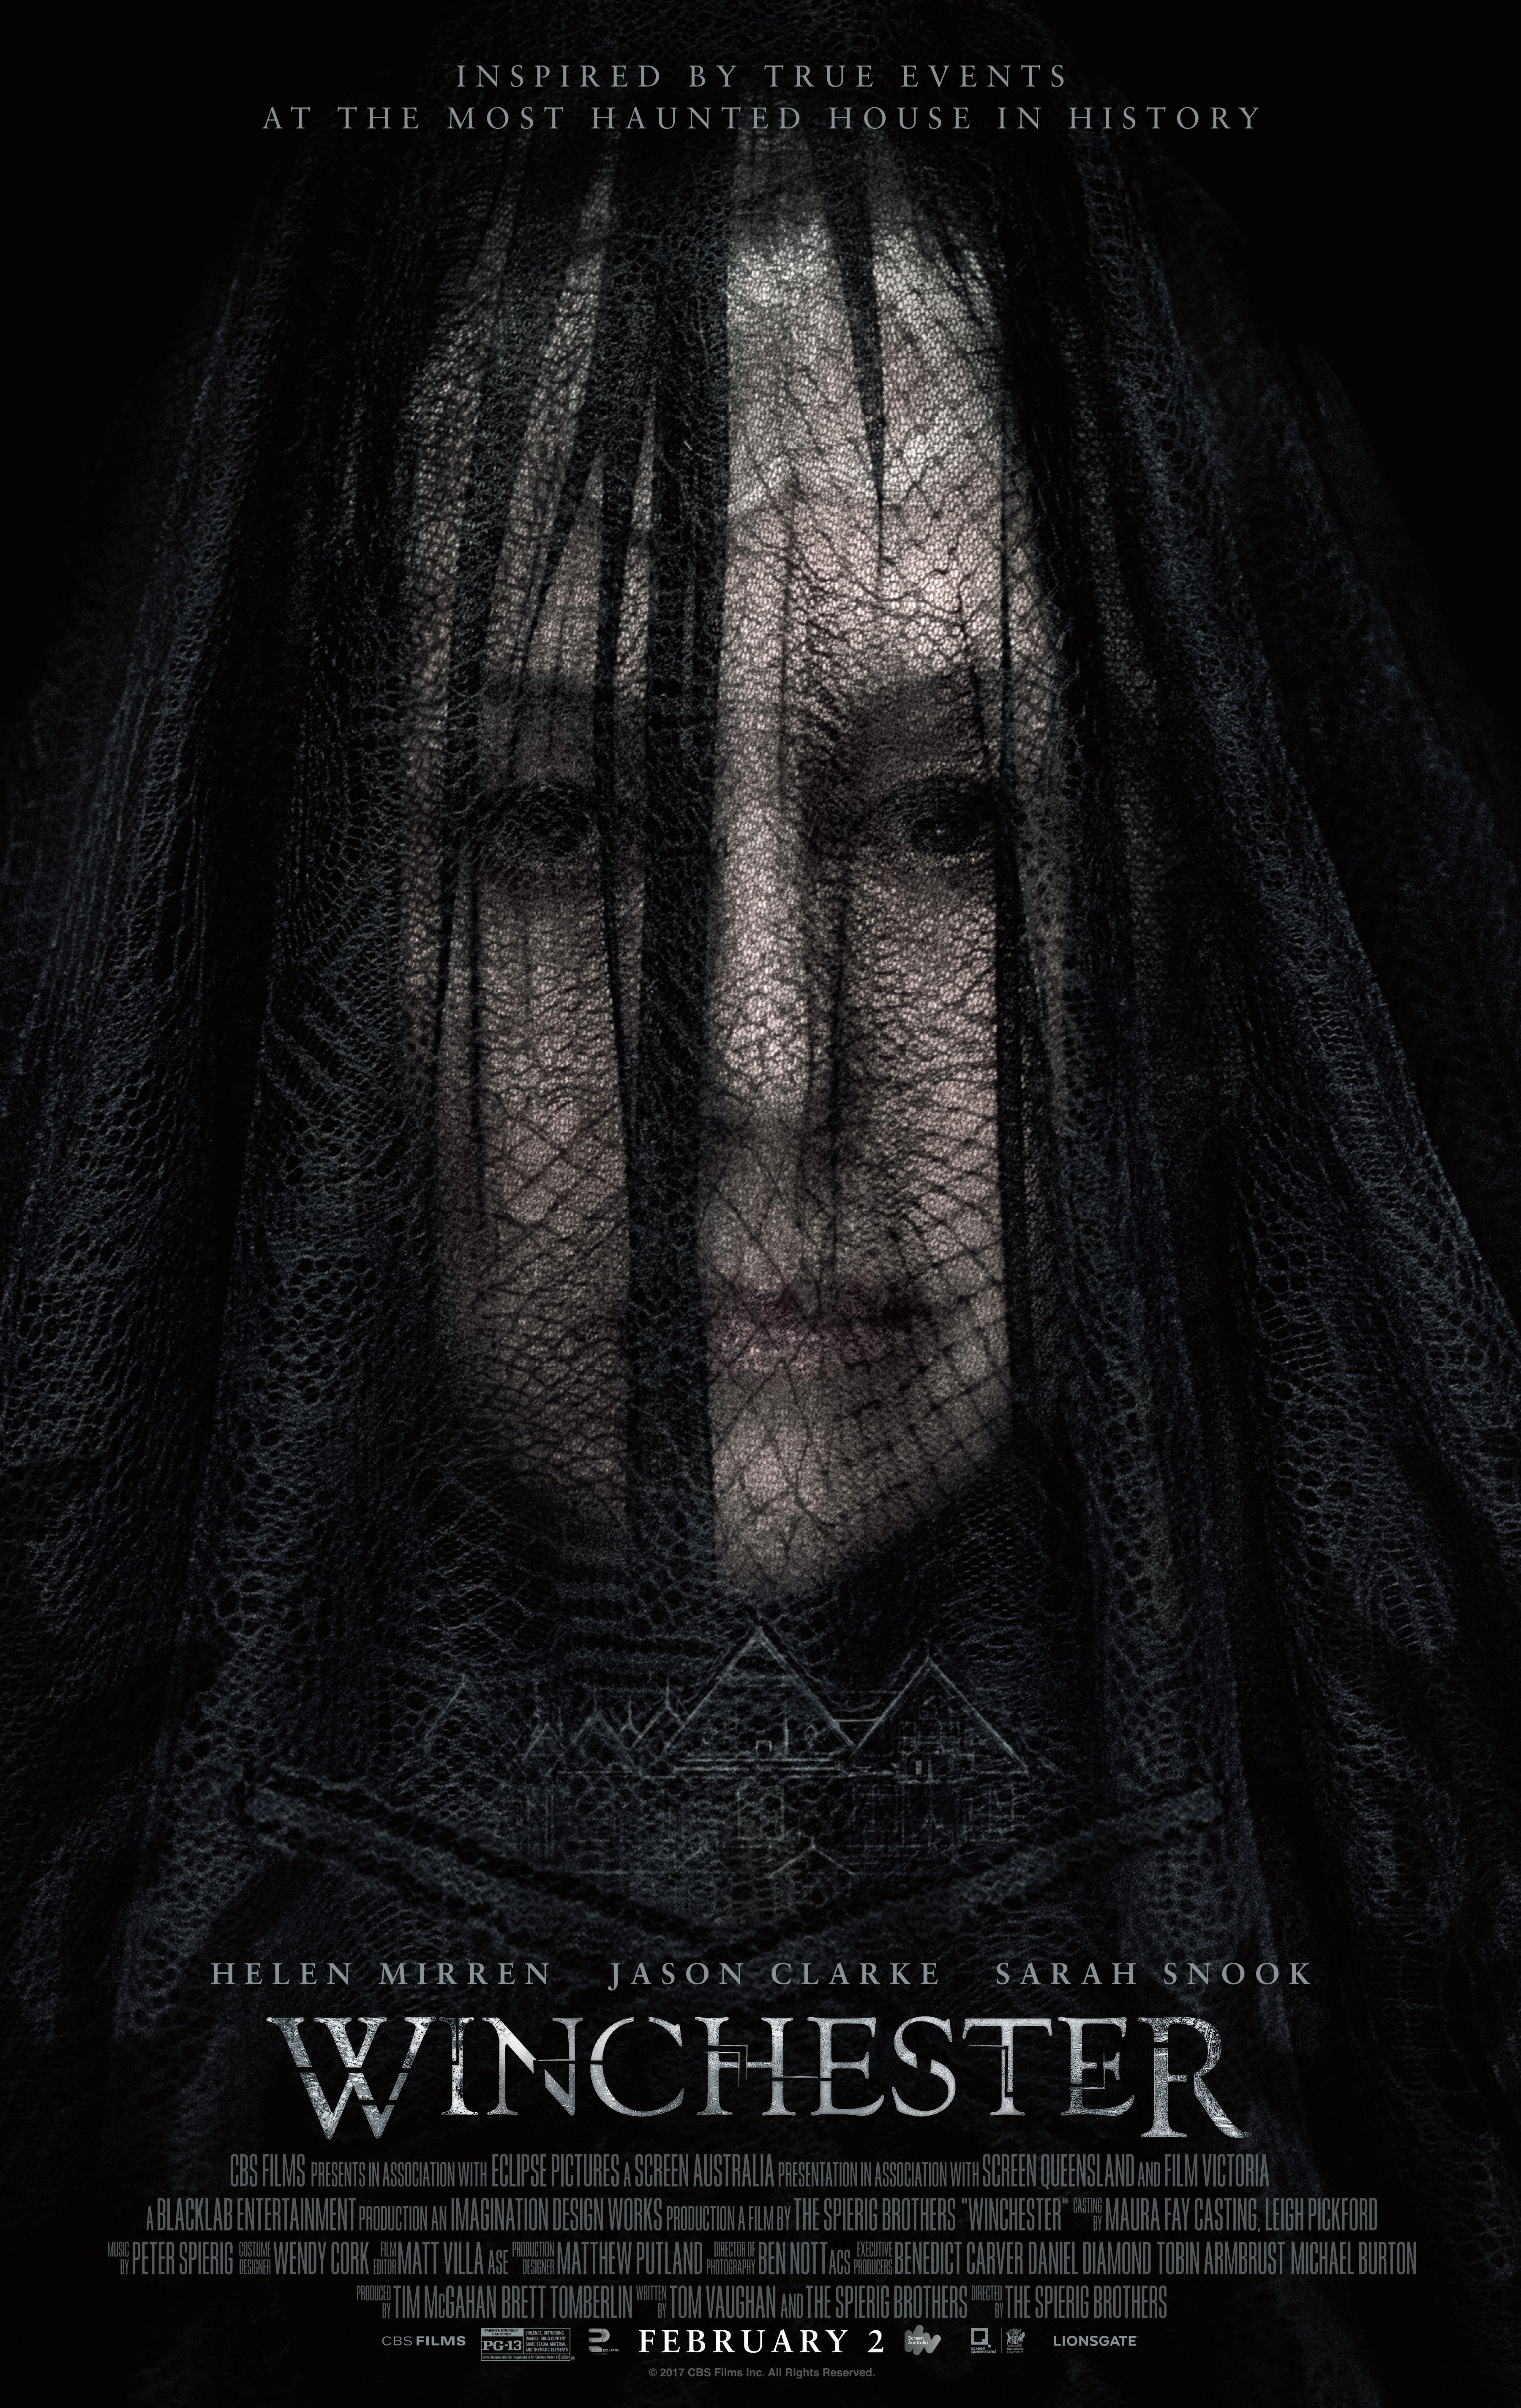 Check Out The Trailer Of Winchester Starring Helen Mirren Winchestermovie Helenmirren Streaming Movies Movies To Watch Free Free Movies Online